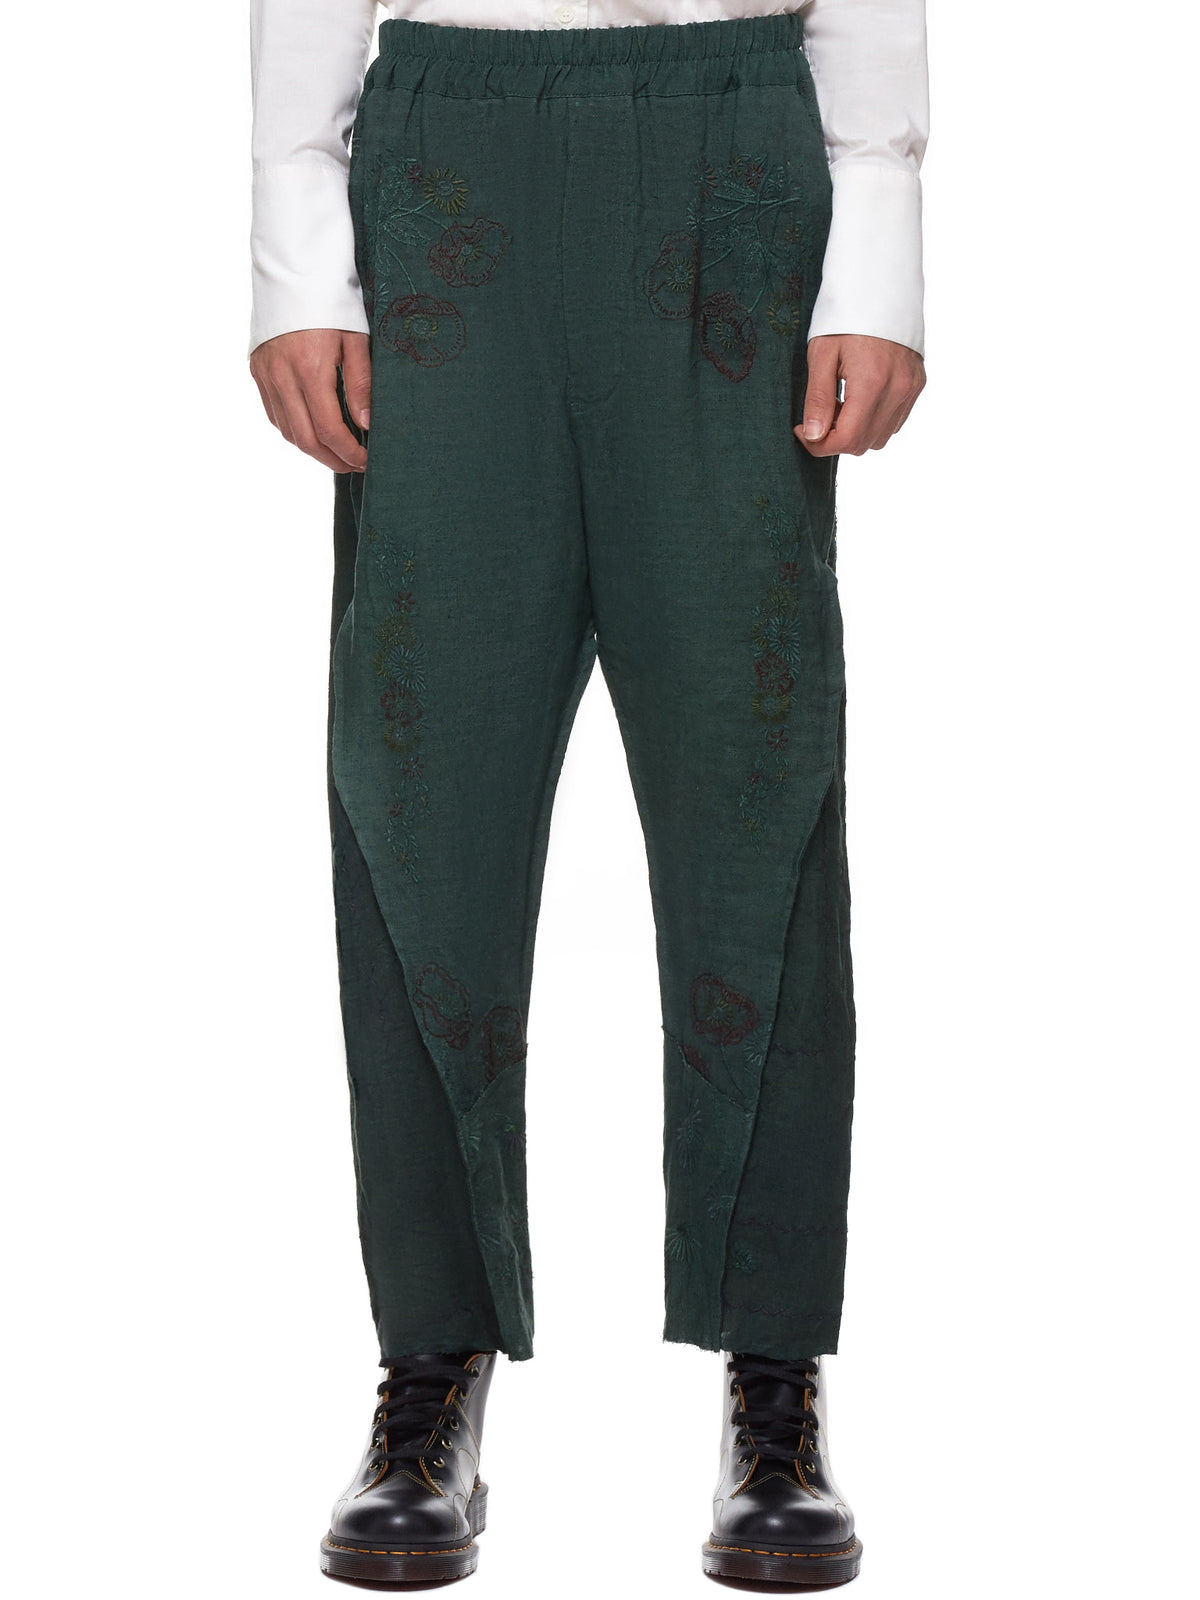 Embroidered Trousers (130204M-HIRO-GREEN)